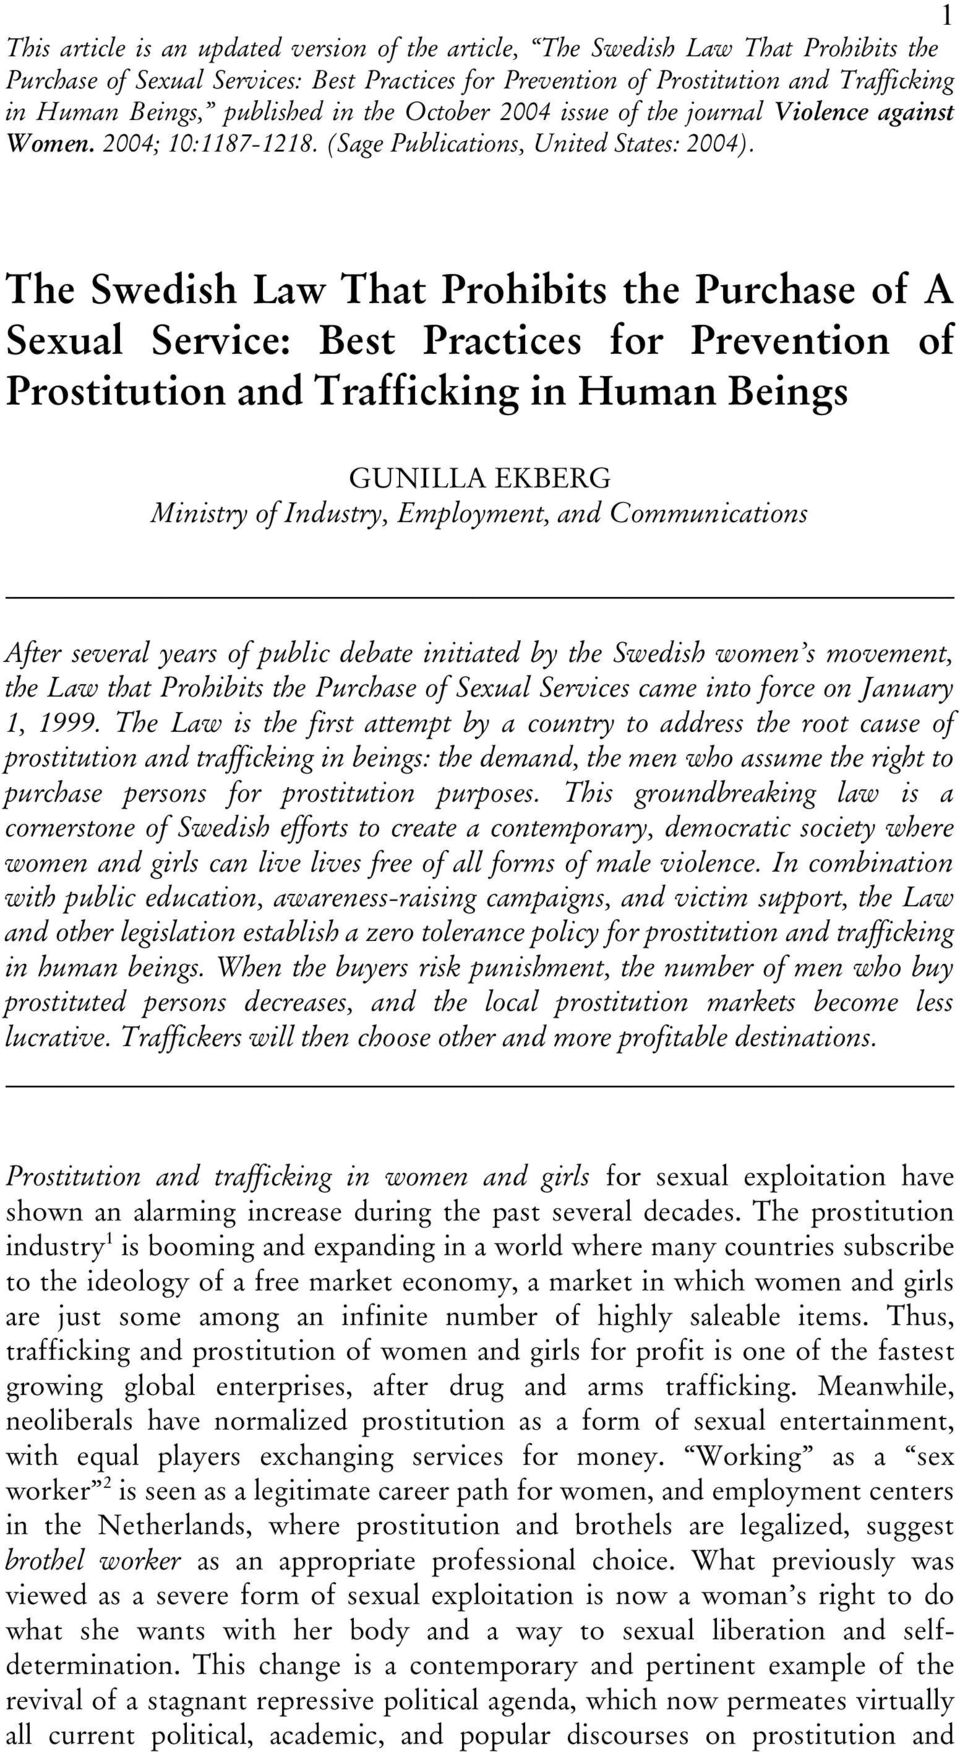 The Swedish Law That Prohibits the Purchase of A Sexual Service: Best Practices for Prevention of Prostitution and Trafficking in Human Beings GUNILLA EKBERG Ministry of Industry, Employment, and